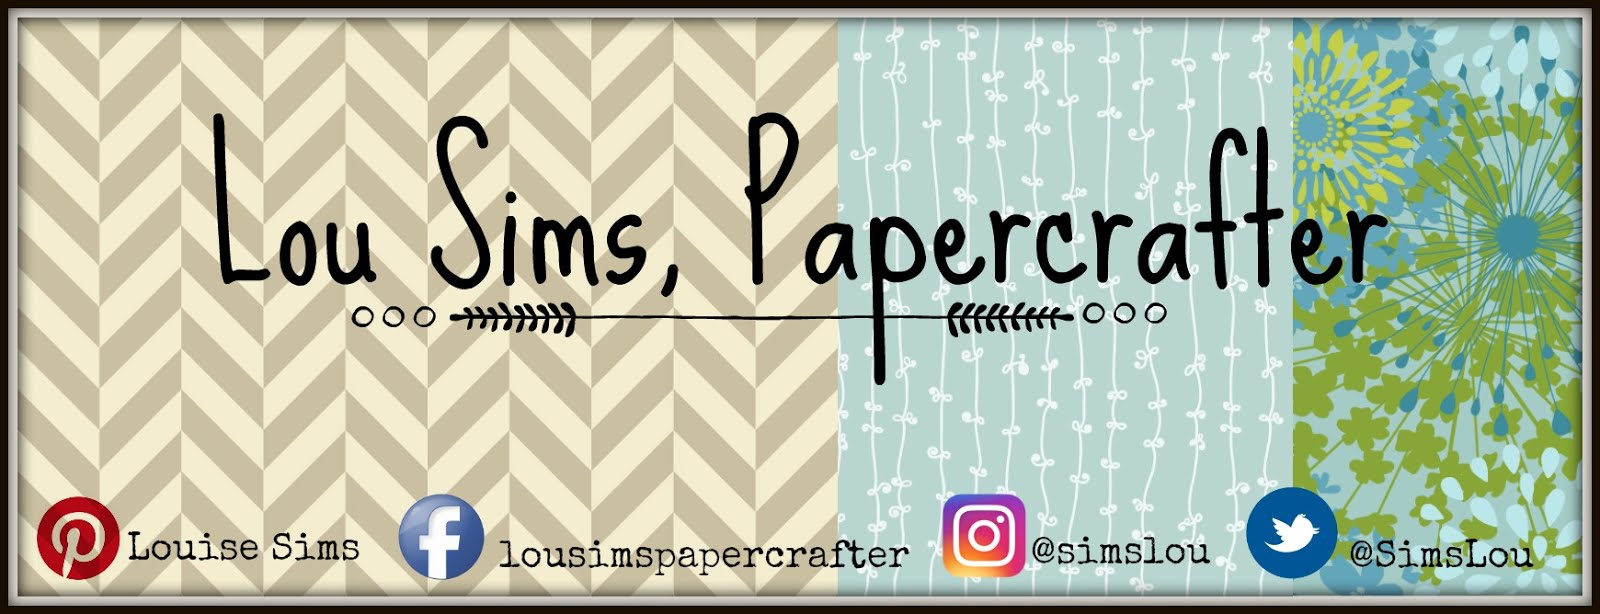 Louise Sims Papercrafter